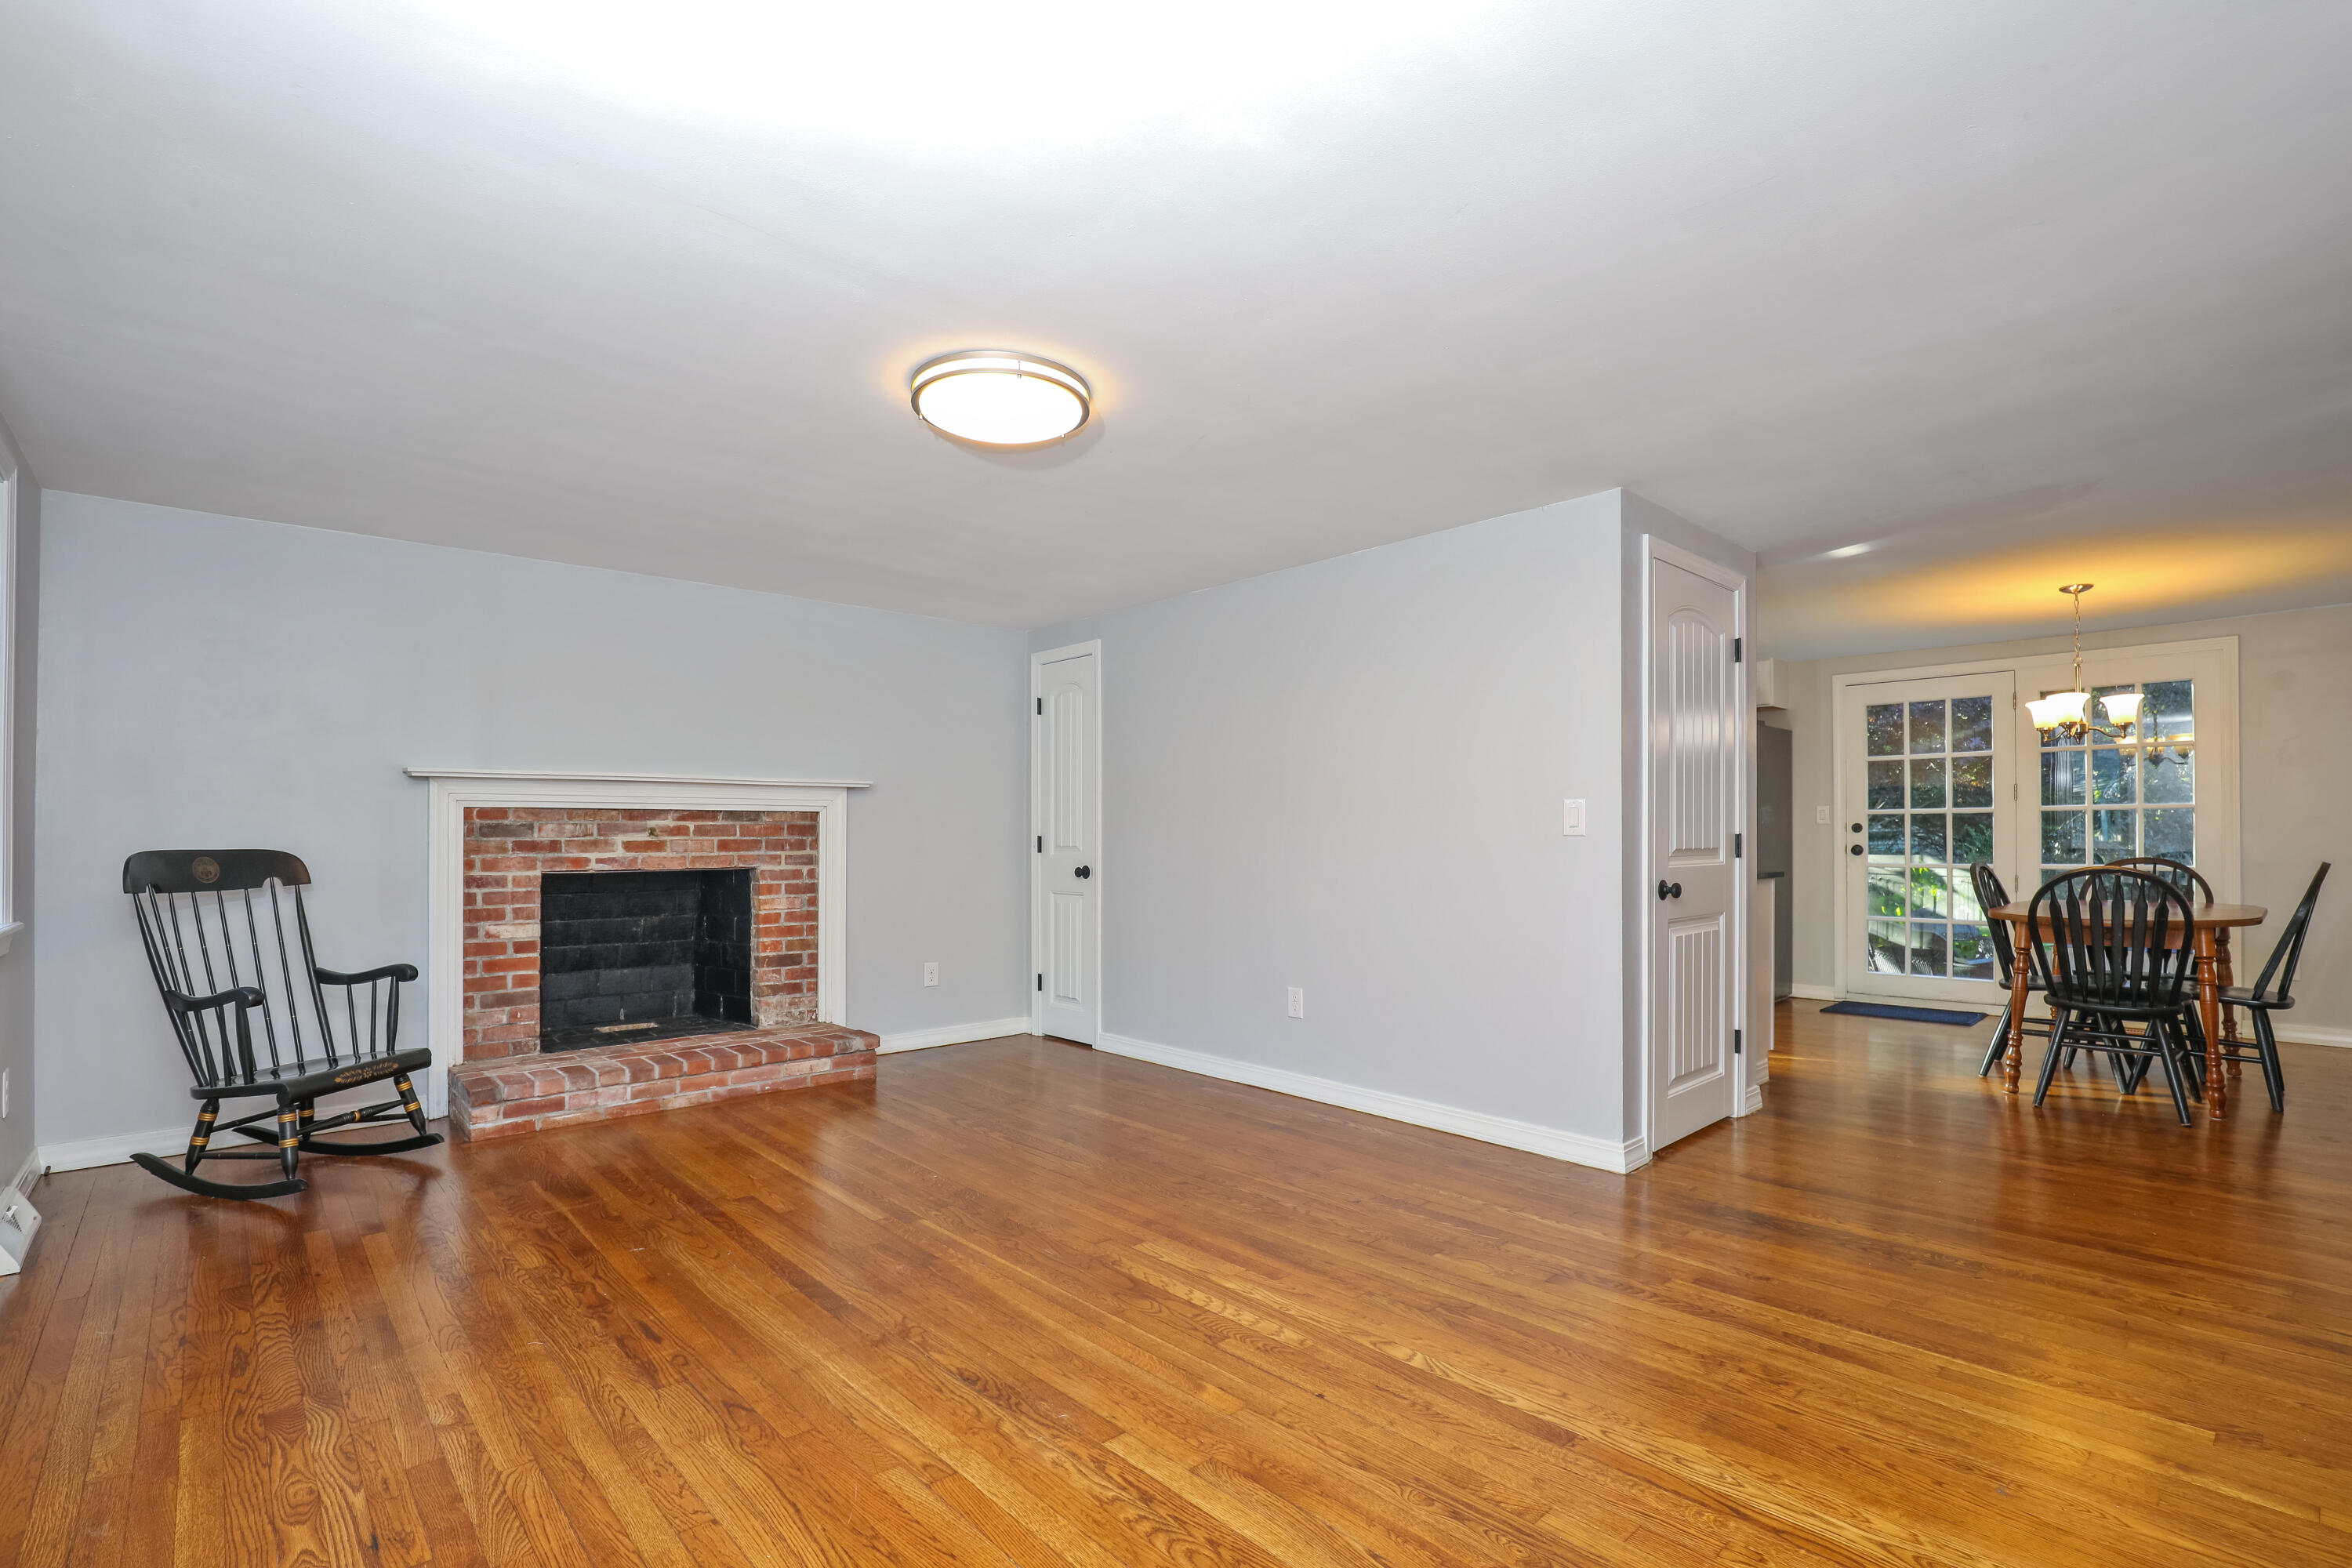 9 Grouse Lane, Hyannis, MA photo 5